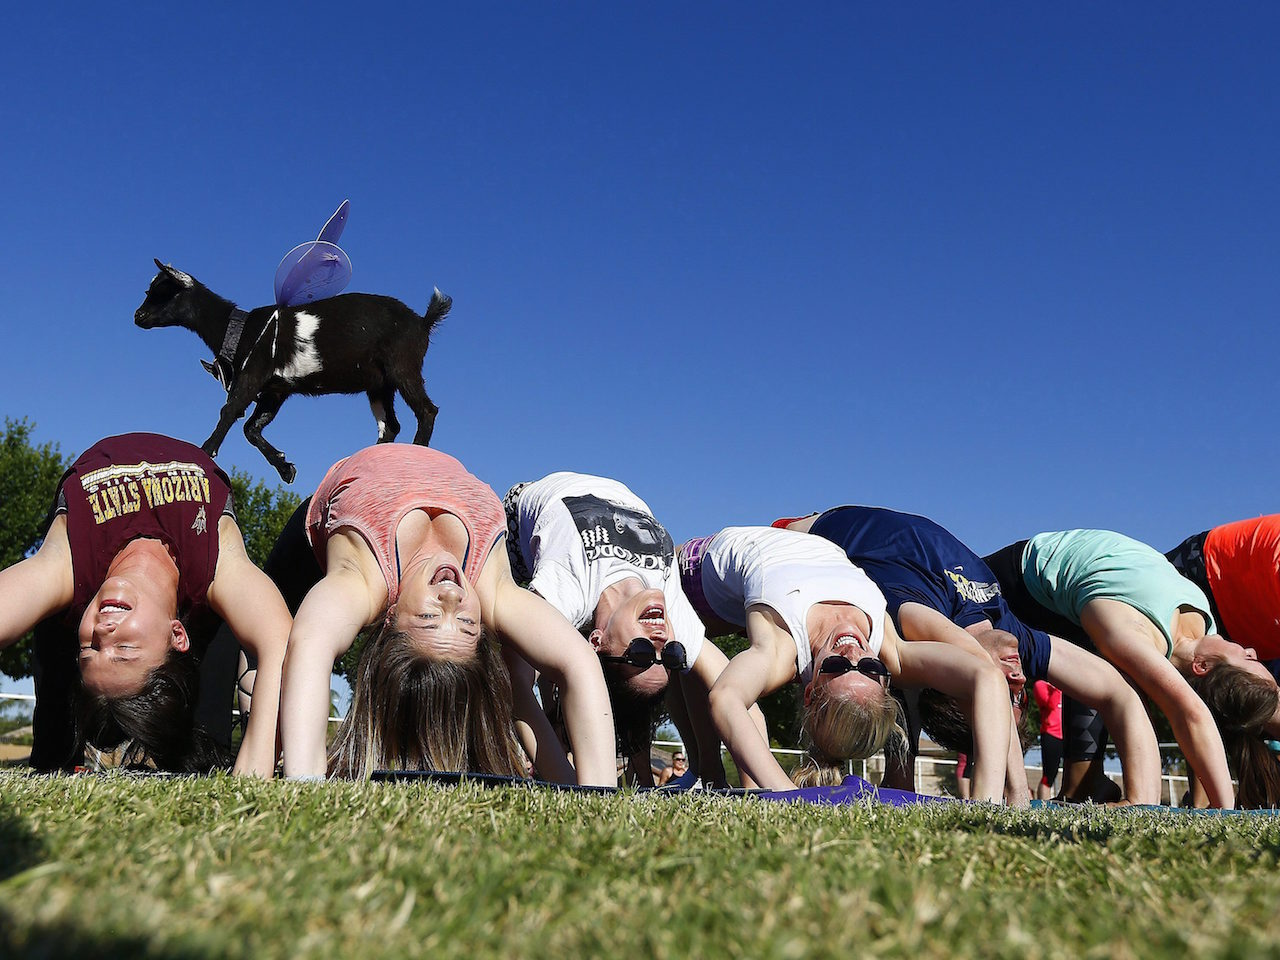 AZ Goat Yoga participants try to stay in a yoga pose as a young goat walks over them at the Welcome Home Ranch Saturday, May 6, 2017, in Gilbert, Ariz. (AP Photo/Ross D. Franklin)